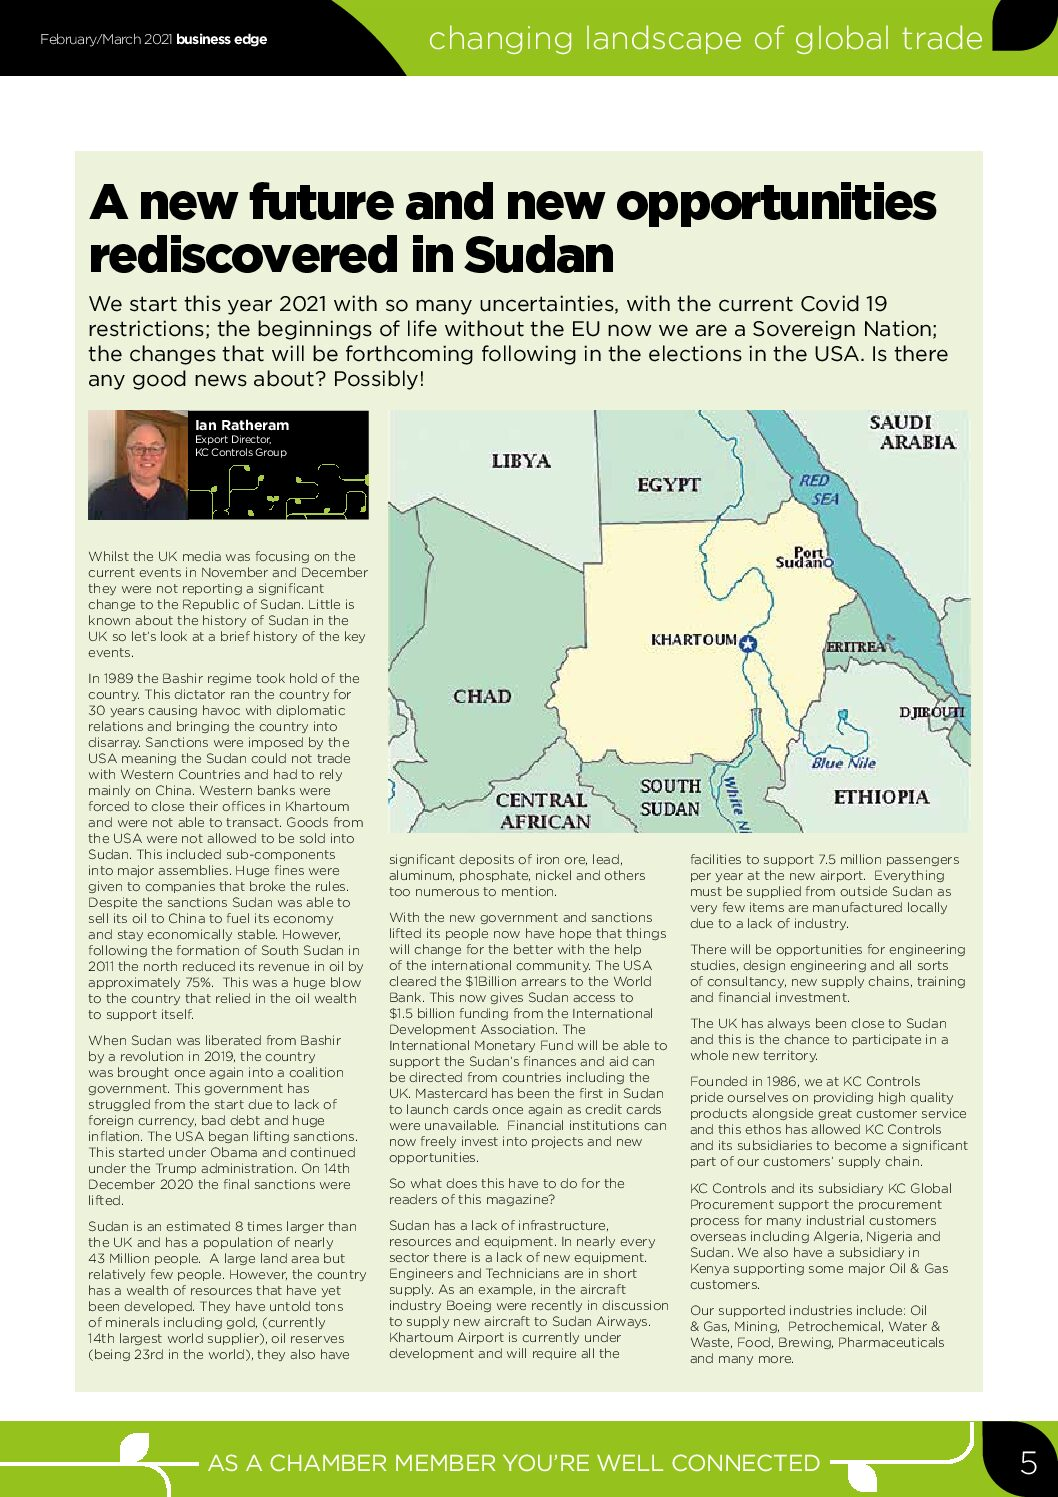 A New Future and New Opportunities Rediscovered in Sudan